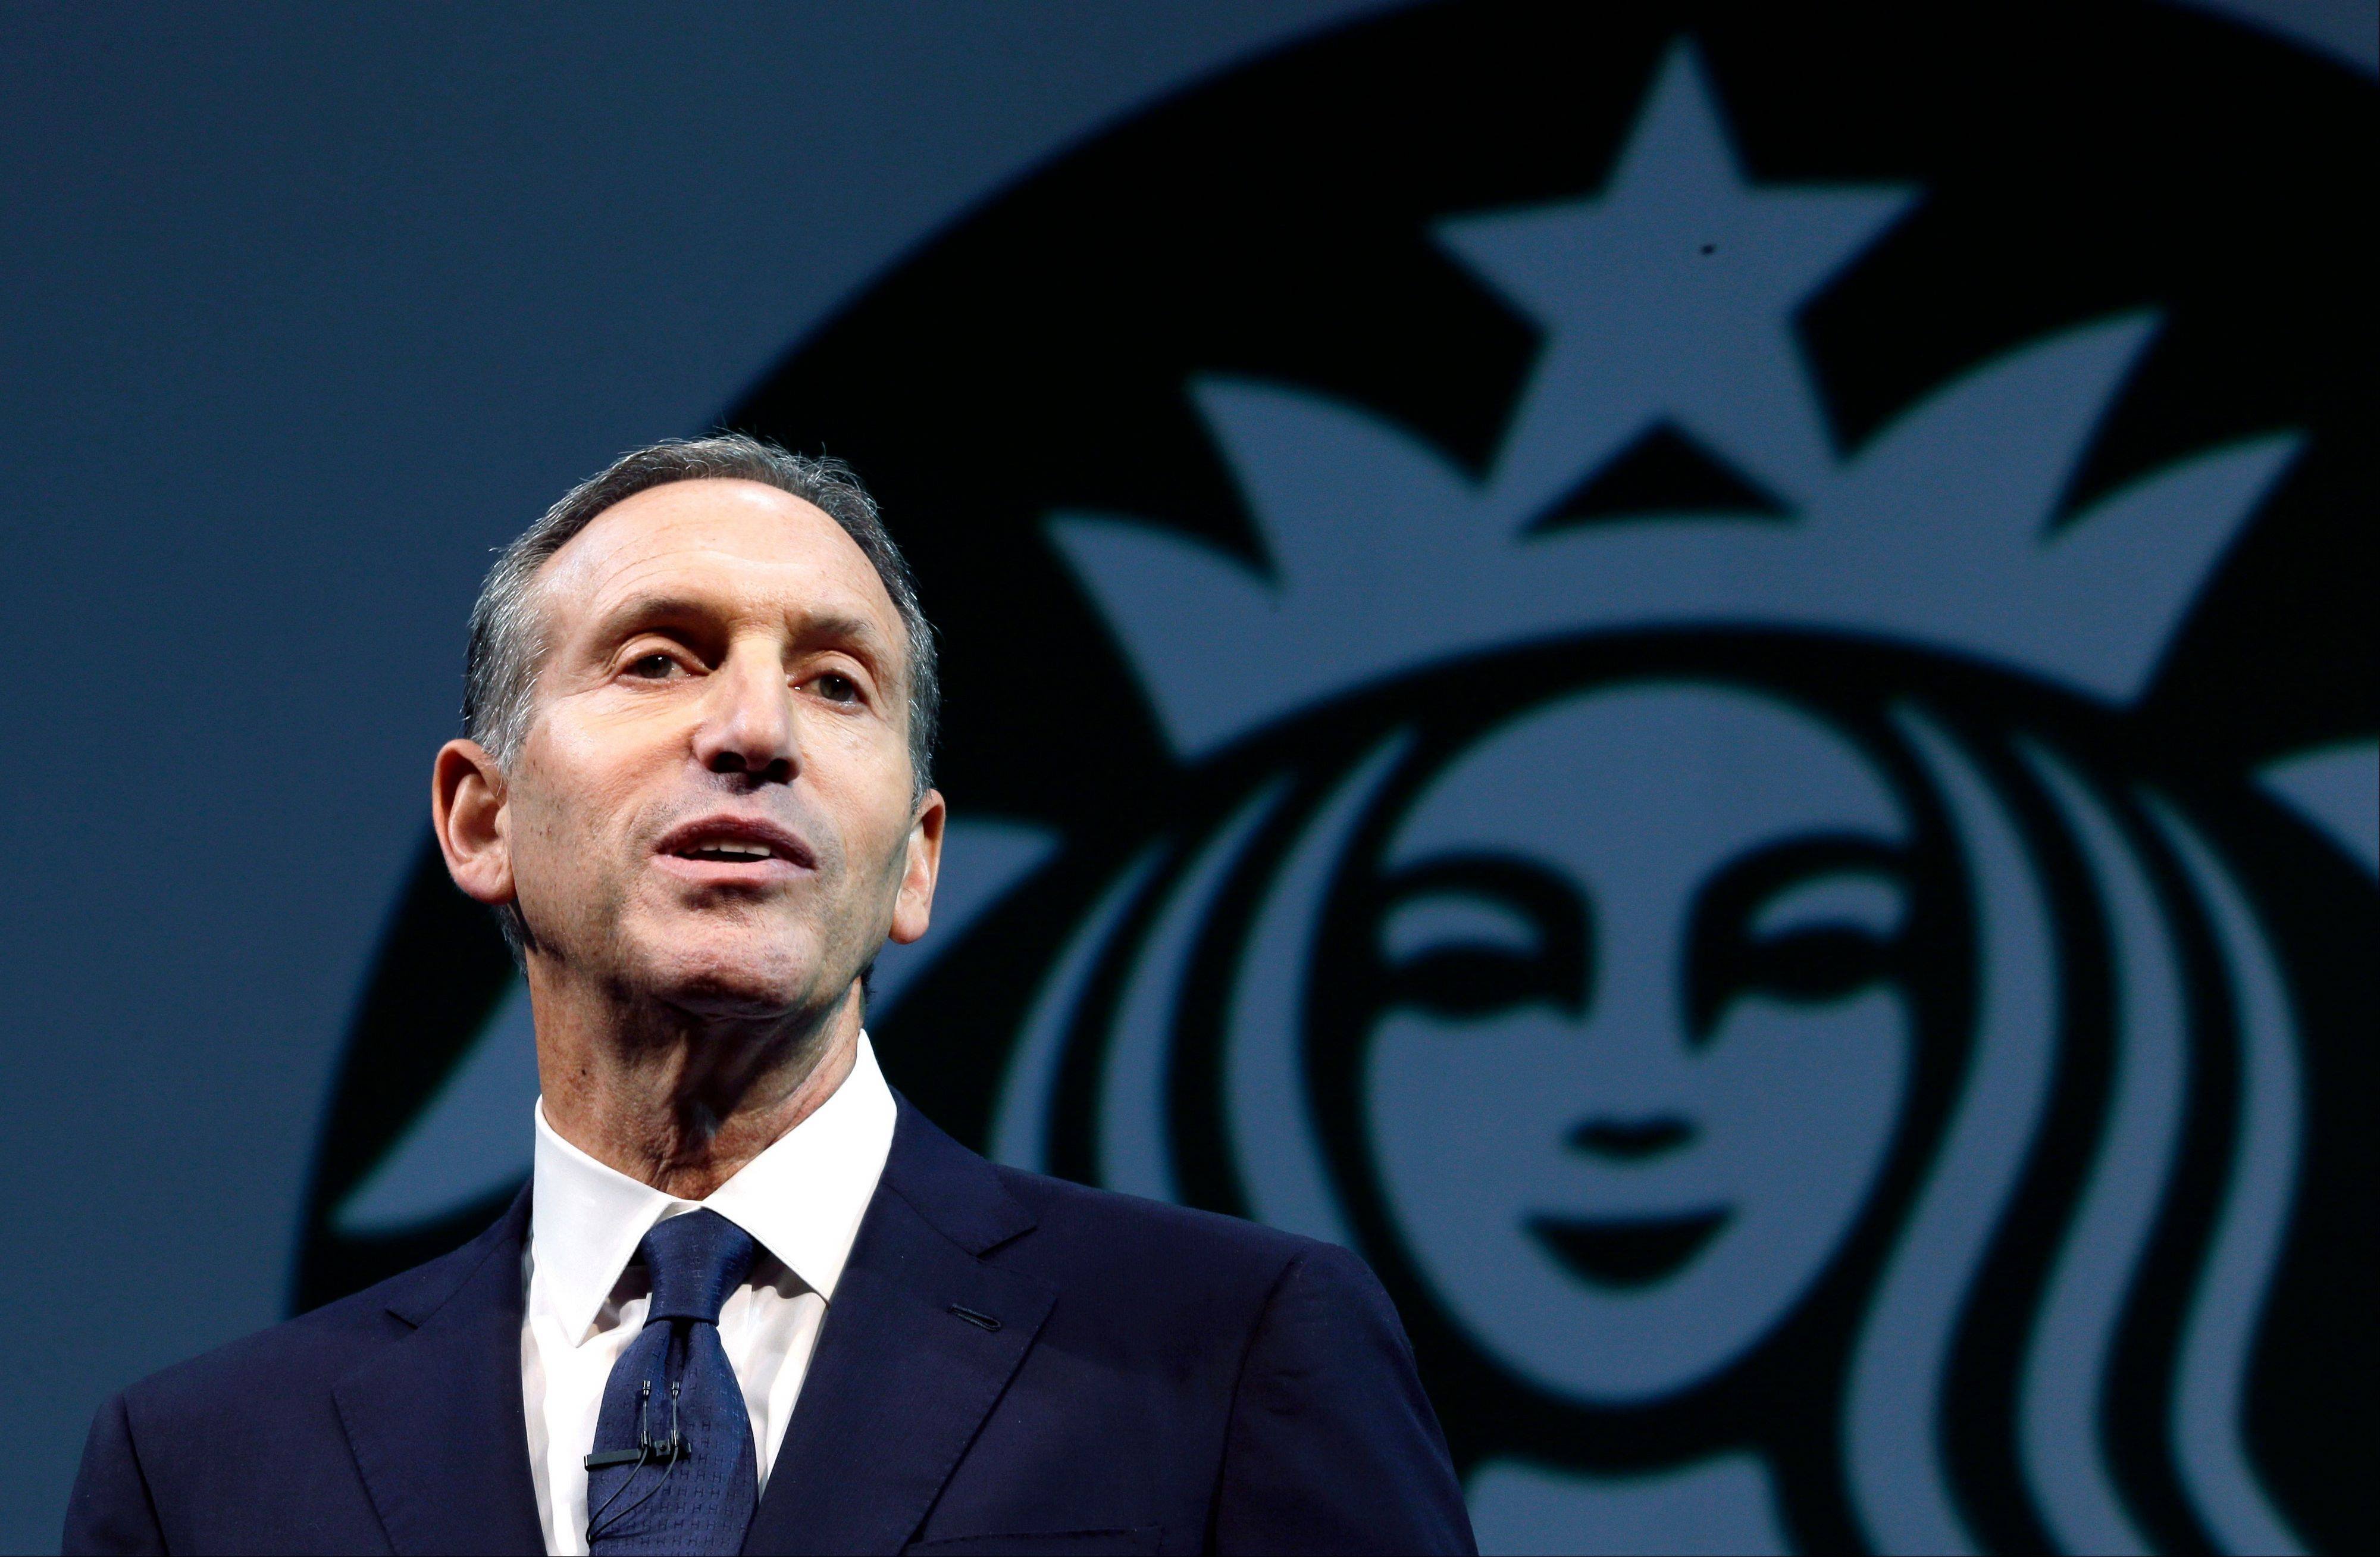 Starbucks CEO Howard Schultz speaks at the company�s annual shareholders meeting Wednesday in Seattle, Wash.